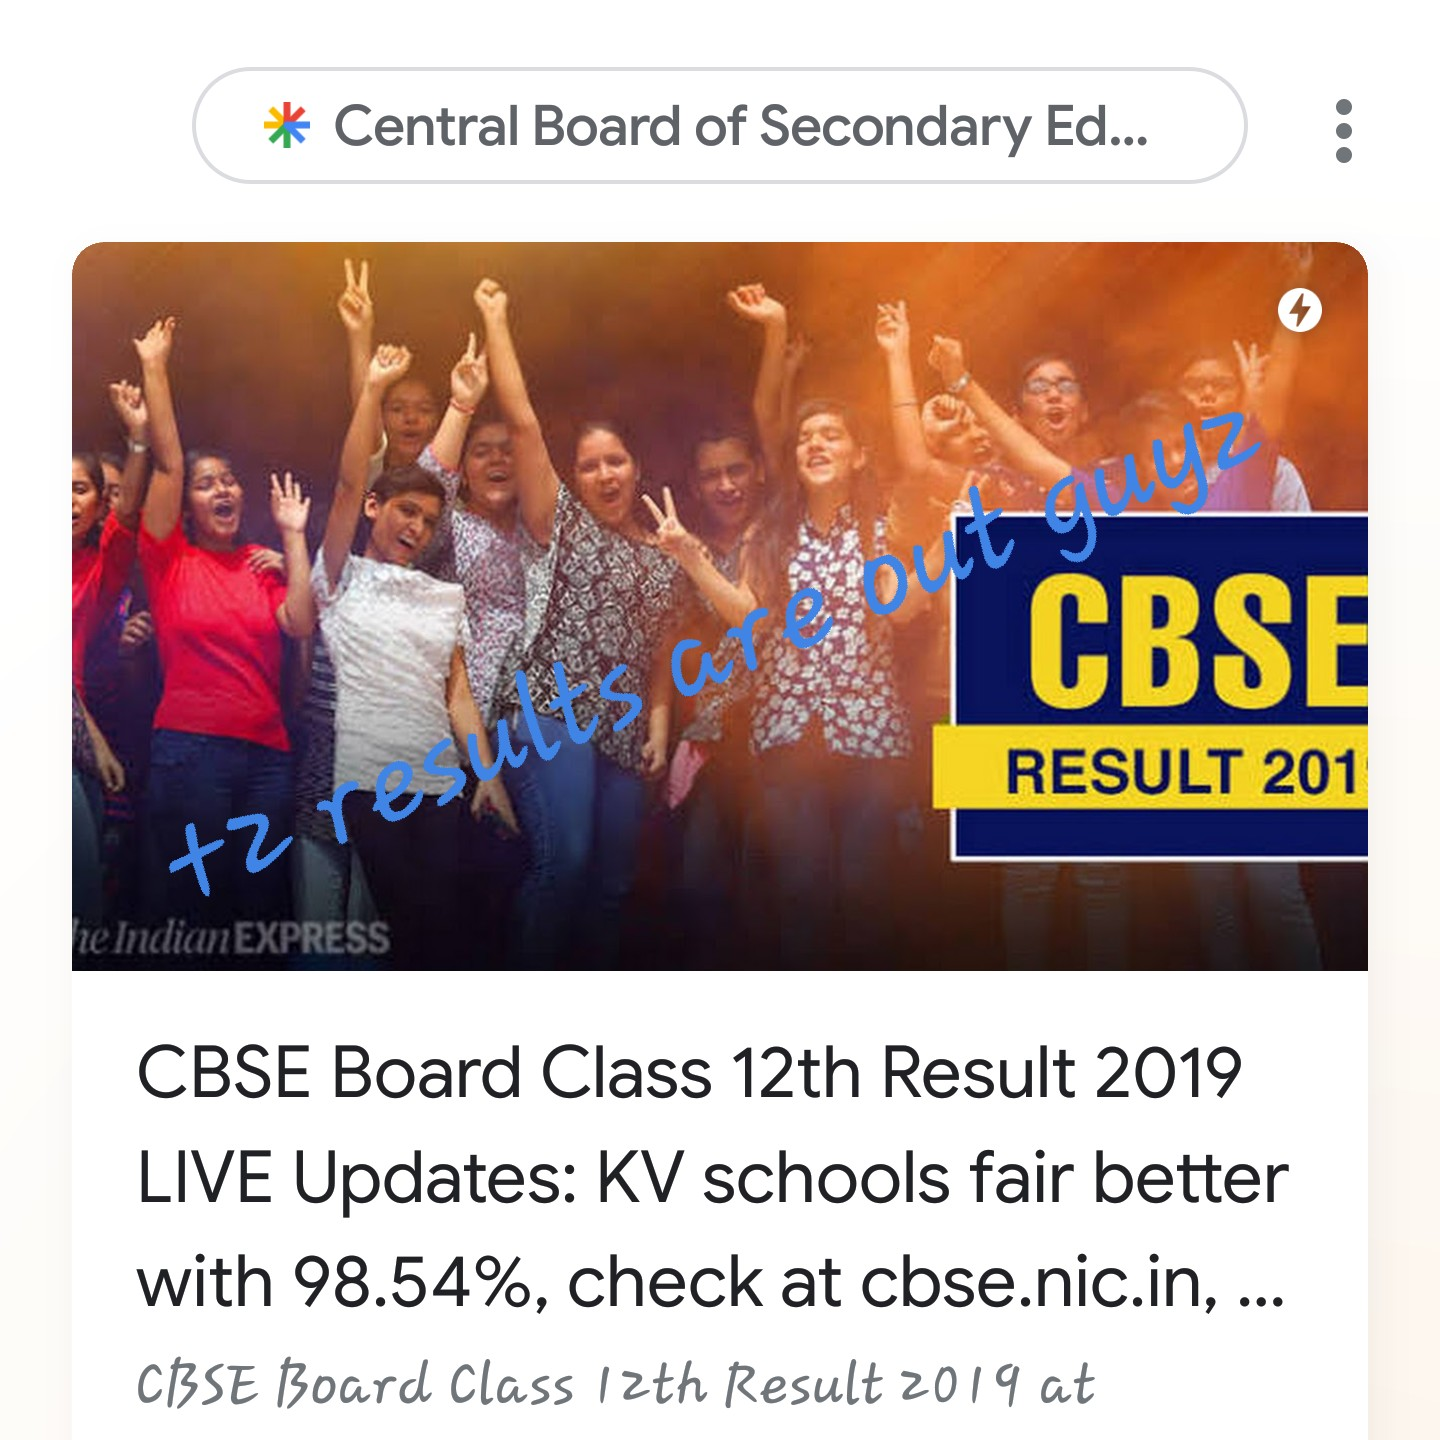 CBSE 12th ഫലം - * Central Board of Secondary Ed . . . ) : CBSE RESULT 201 t2re re Indian EXPRESS CBSE Board Class 12th Result 2019 LIVE Updates : KV schools fair better with 98 . 54 % , check at cbse . nic . in , . . . CBSE Board Class 12th Result 2019 at - ShareChat